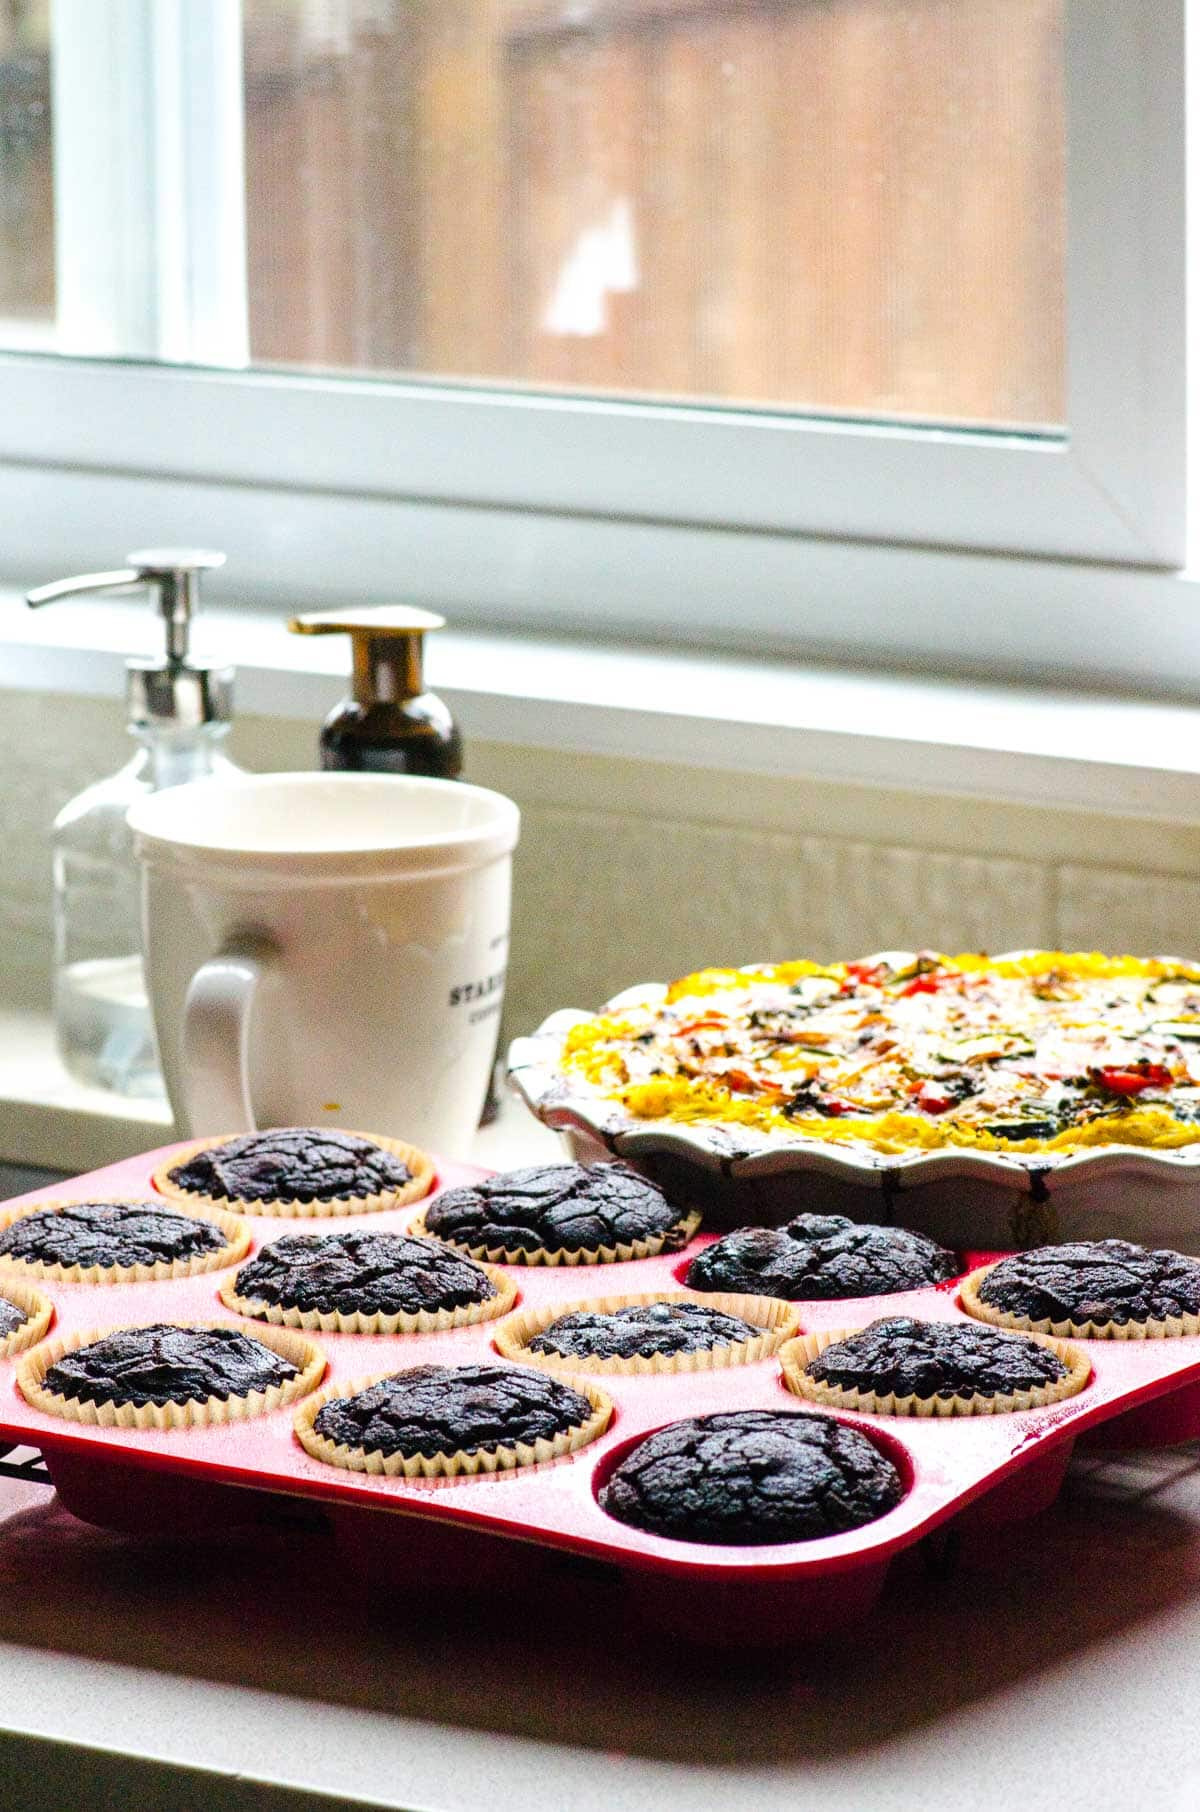 Cherry & Chocolate Coconut Flour Muffins  in muffin tins by the window